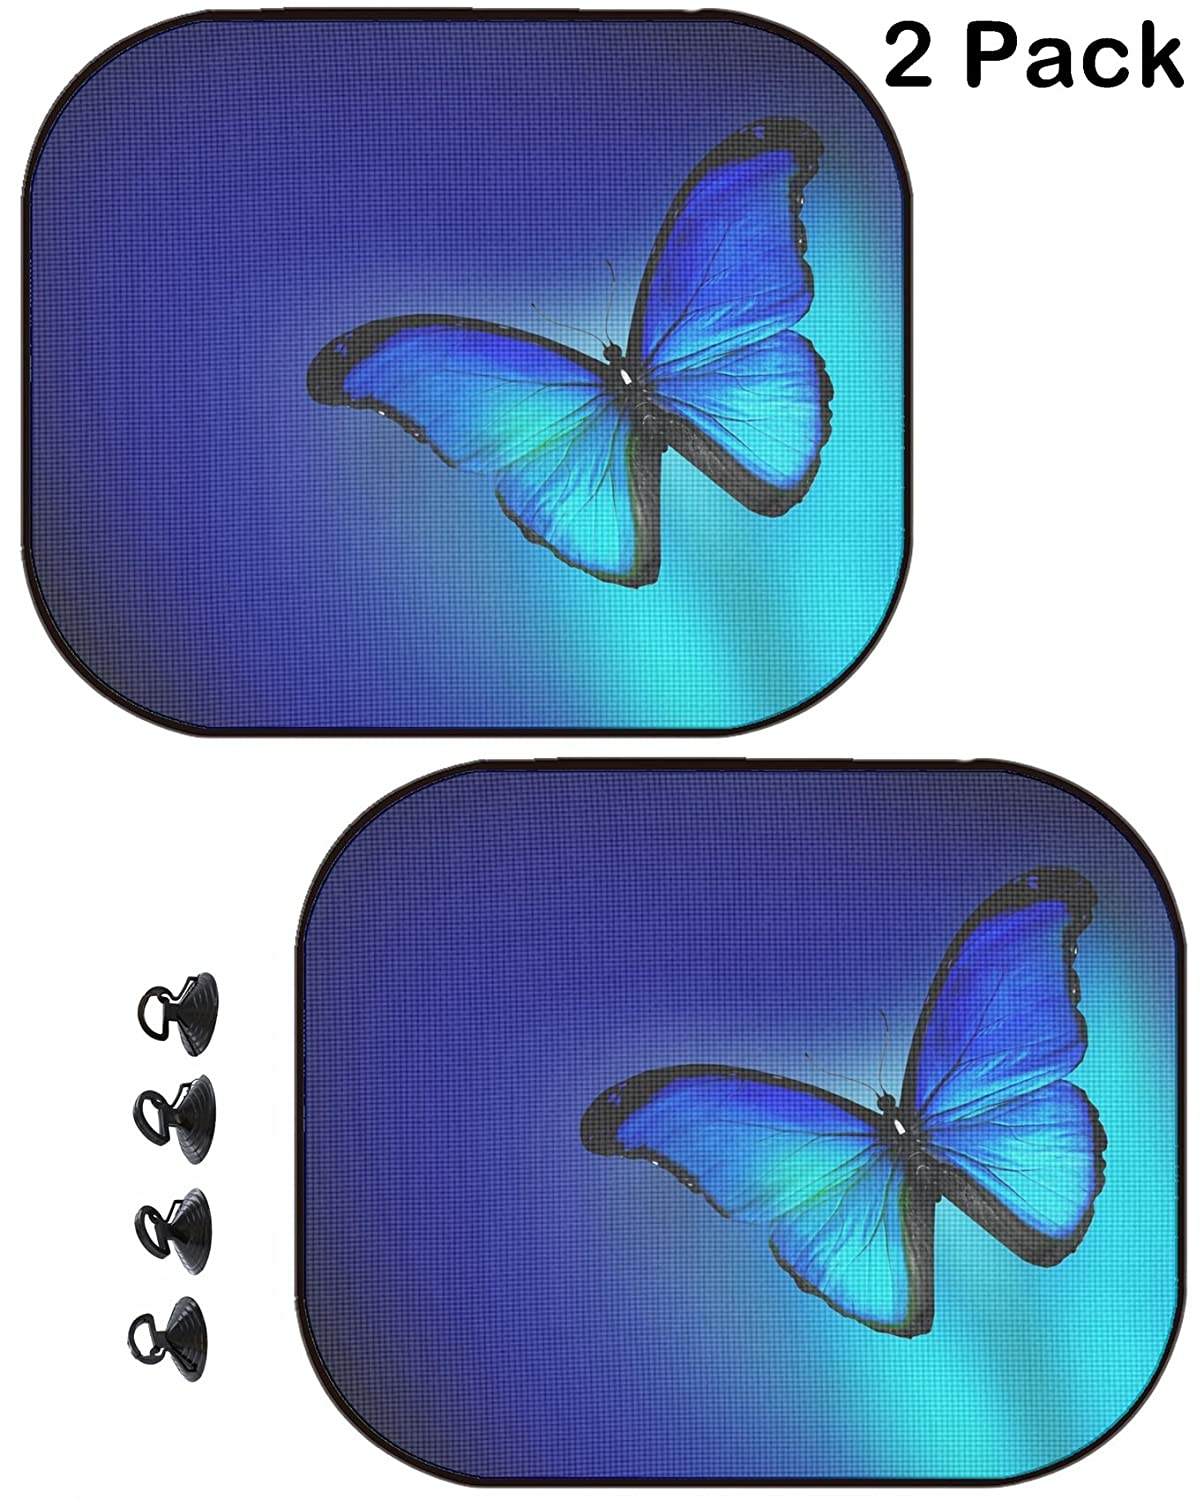 MSD Car Sun Shade Protector Side Window Block Damaging UV Rays Sunlight Heat for All Vehicles, 2 Pack Image ID 33249860 Blue Butterfly on Dark Blue Background